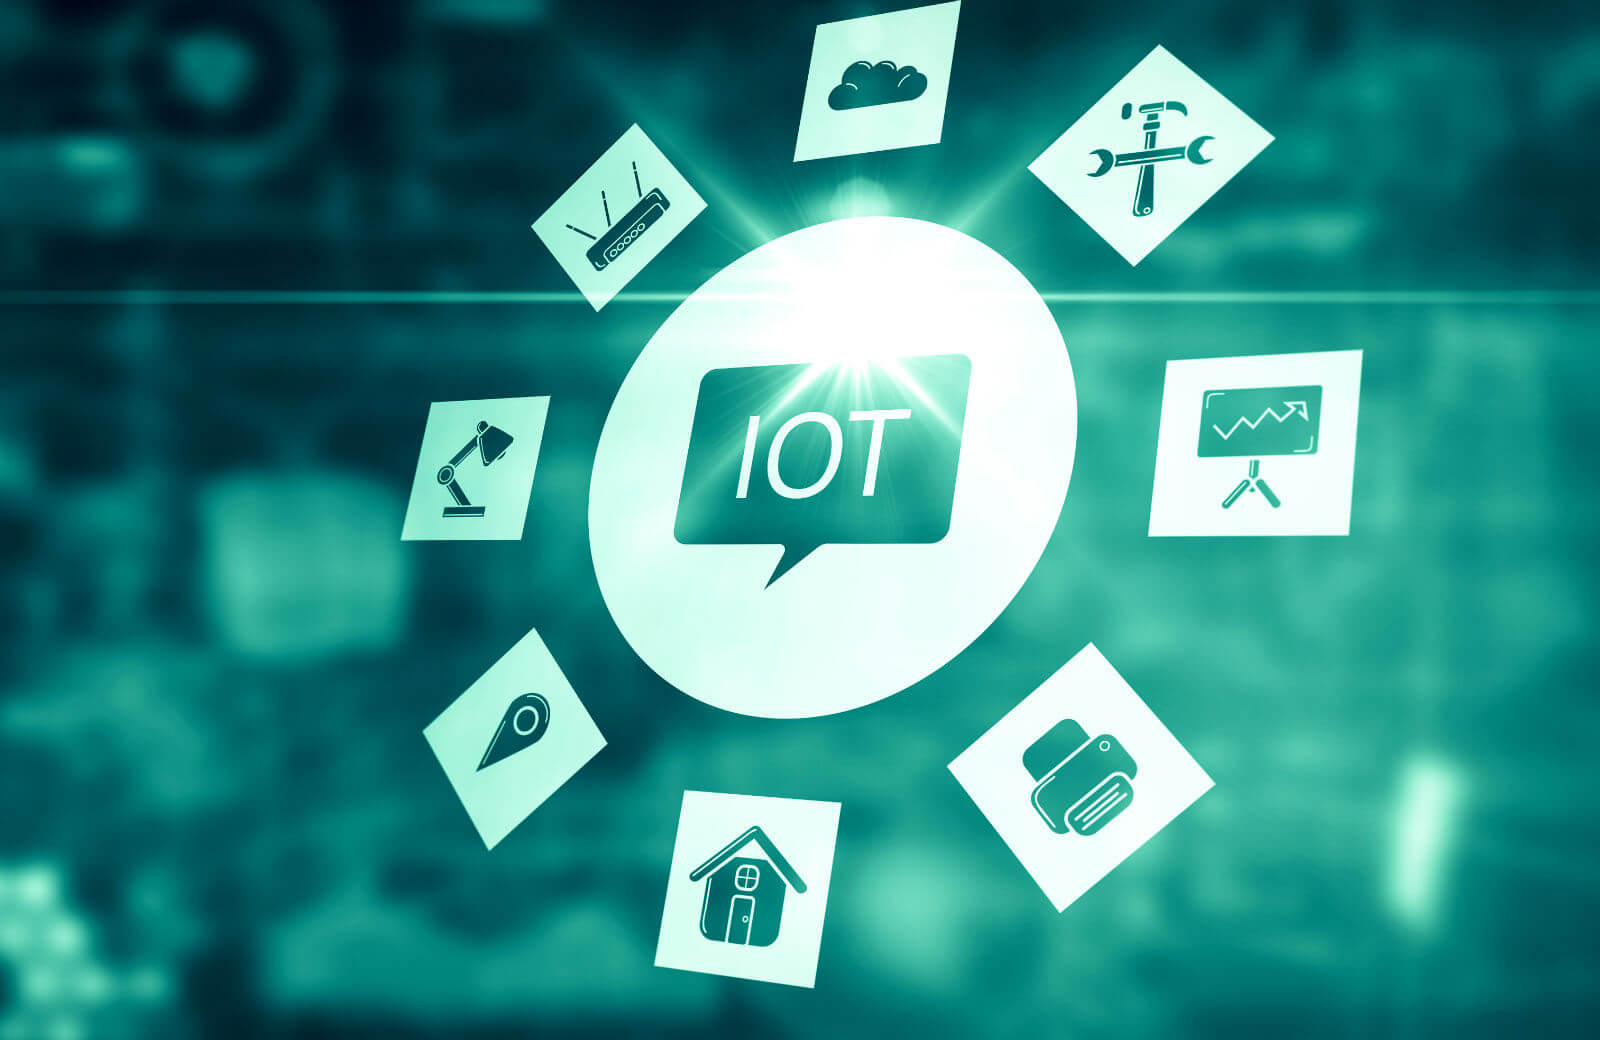 ISO IEC 30141 internet of things norm